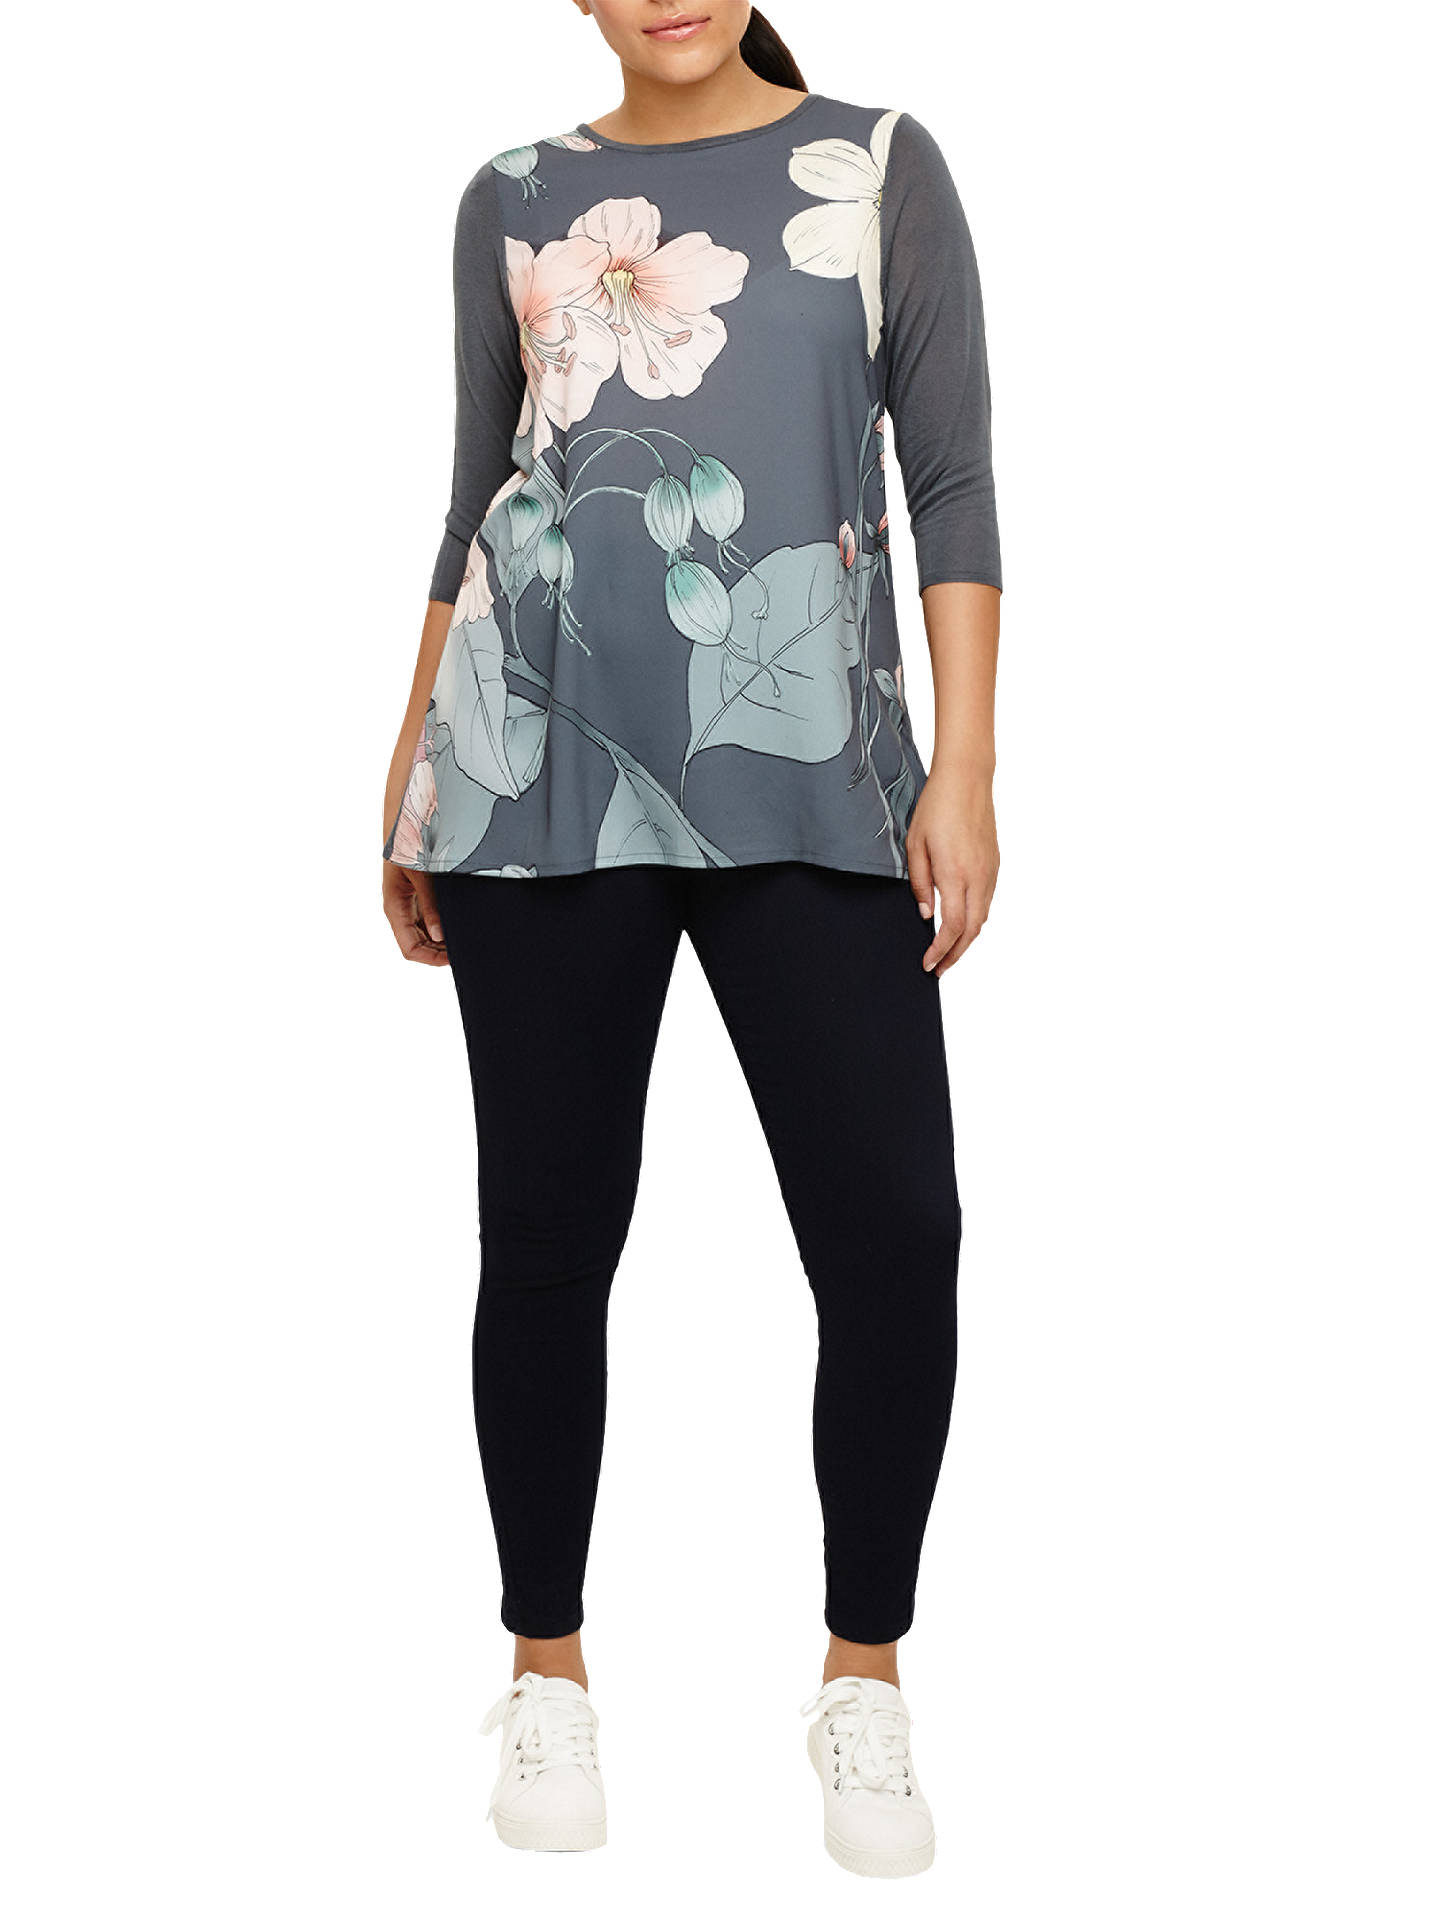 BuyStudio 8 Talia Print Knit Jumper, Grey/Multi, 16 Online at johnlewis.com